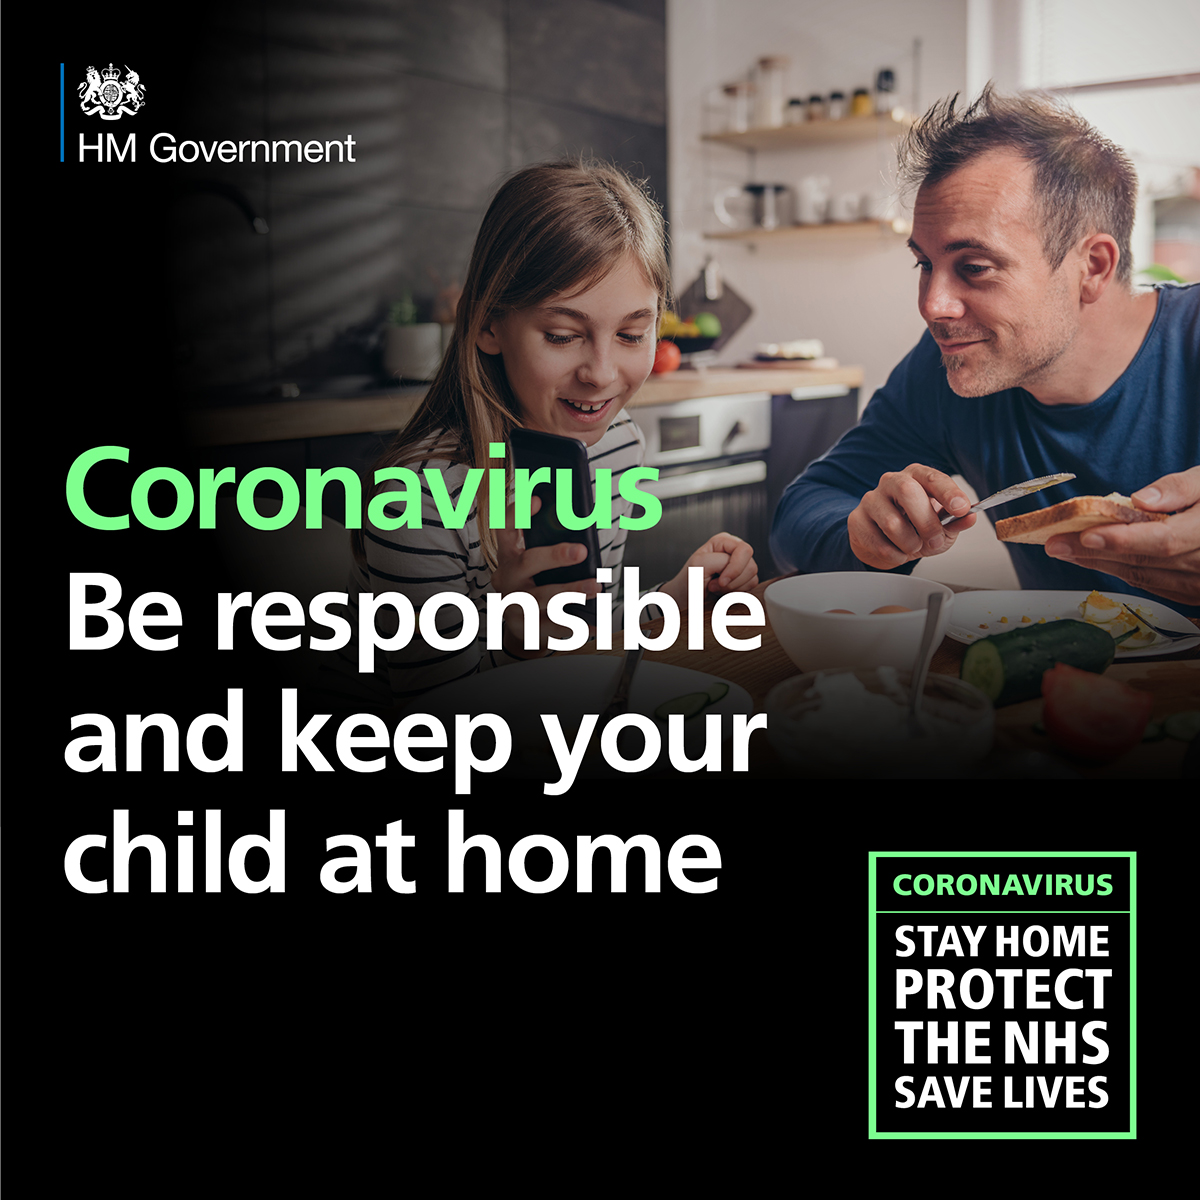 Coronavirus - Stay at home